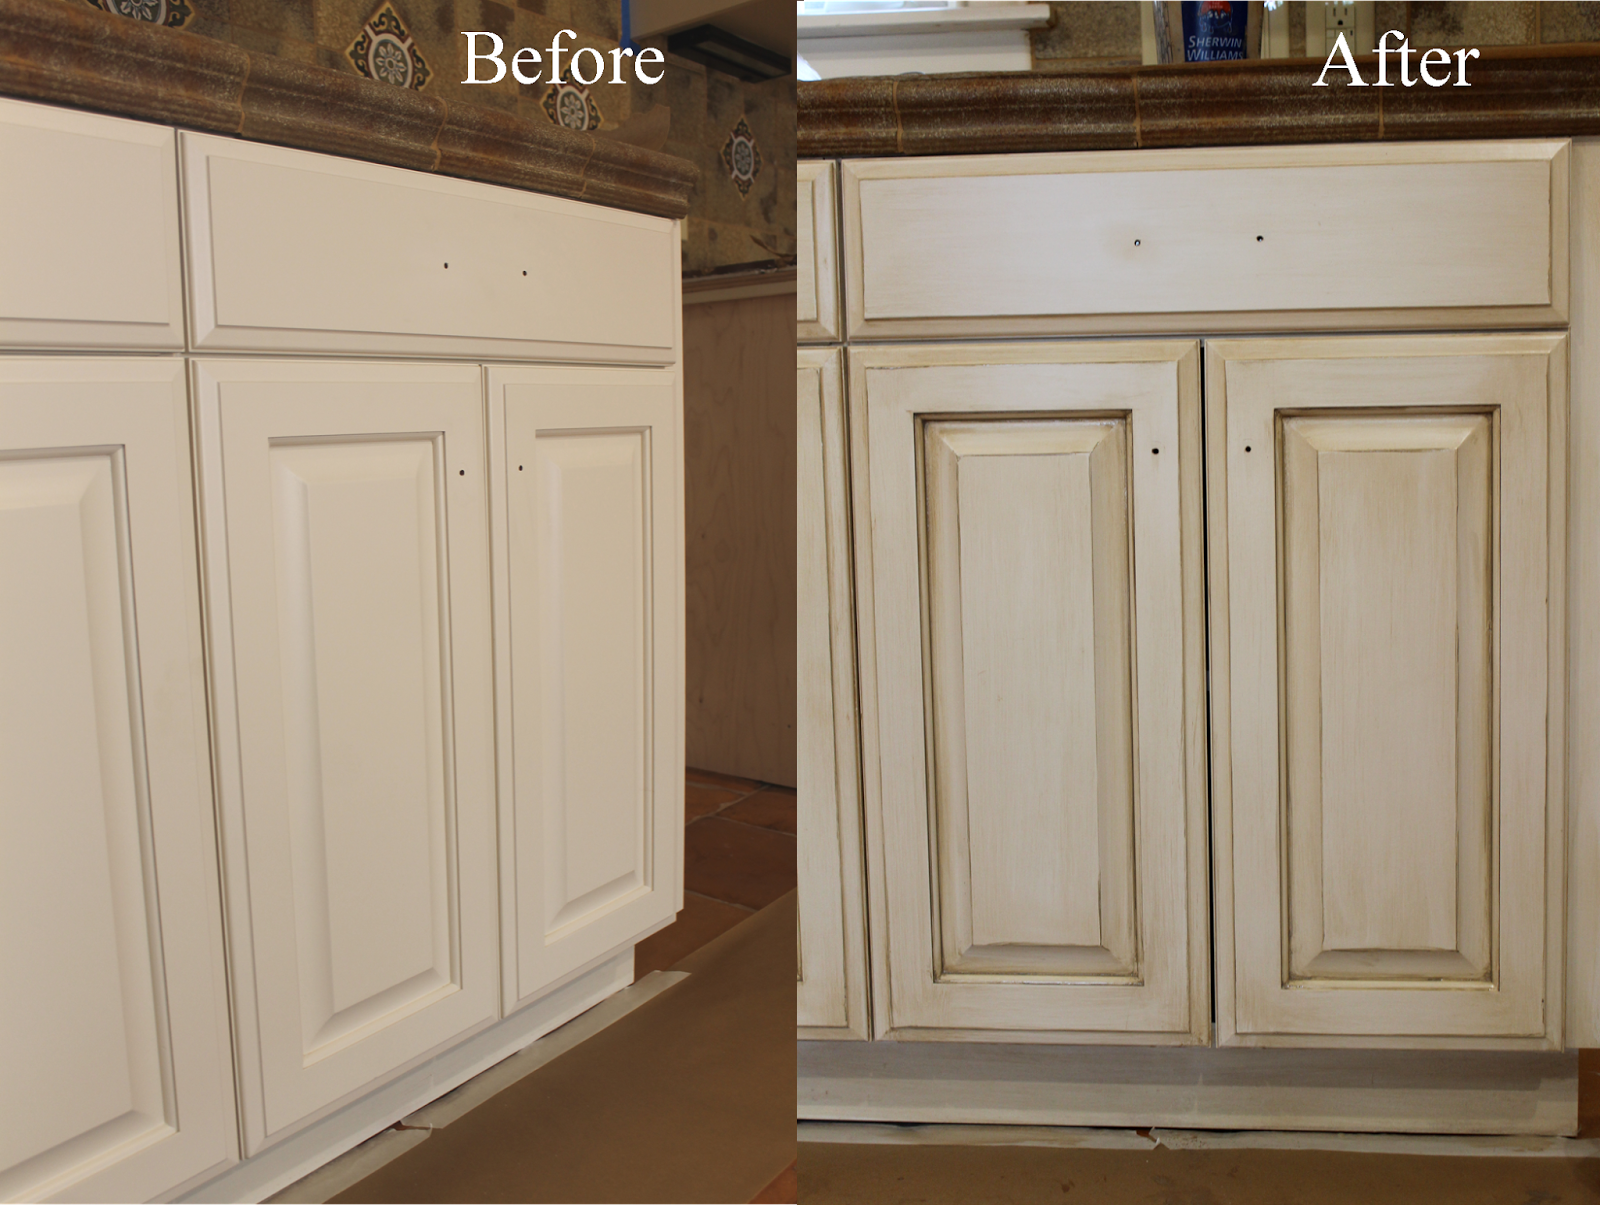 Before and afterazingantiquing cabinets a complete how to glazingantiquing cabinets a complete how to guide from a professional a faux finisher shows you how to glaze cabinets like a pro solutioingenieria Image collections